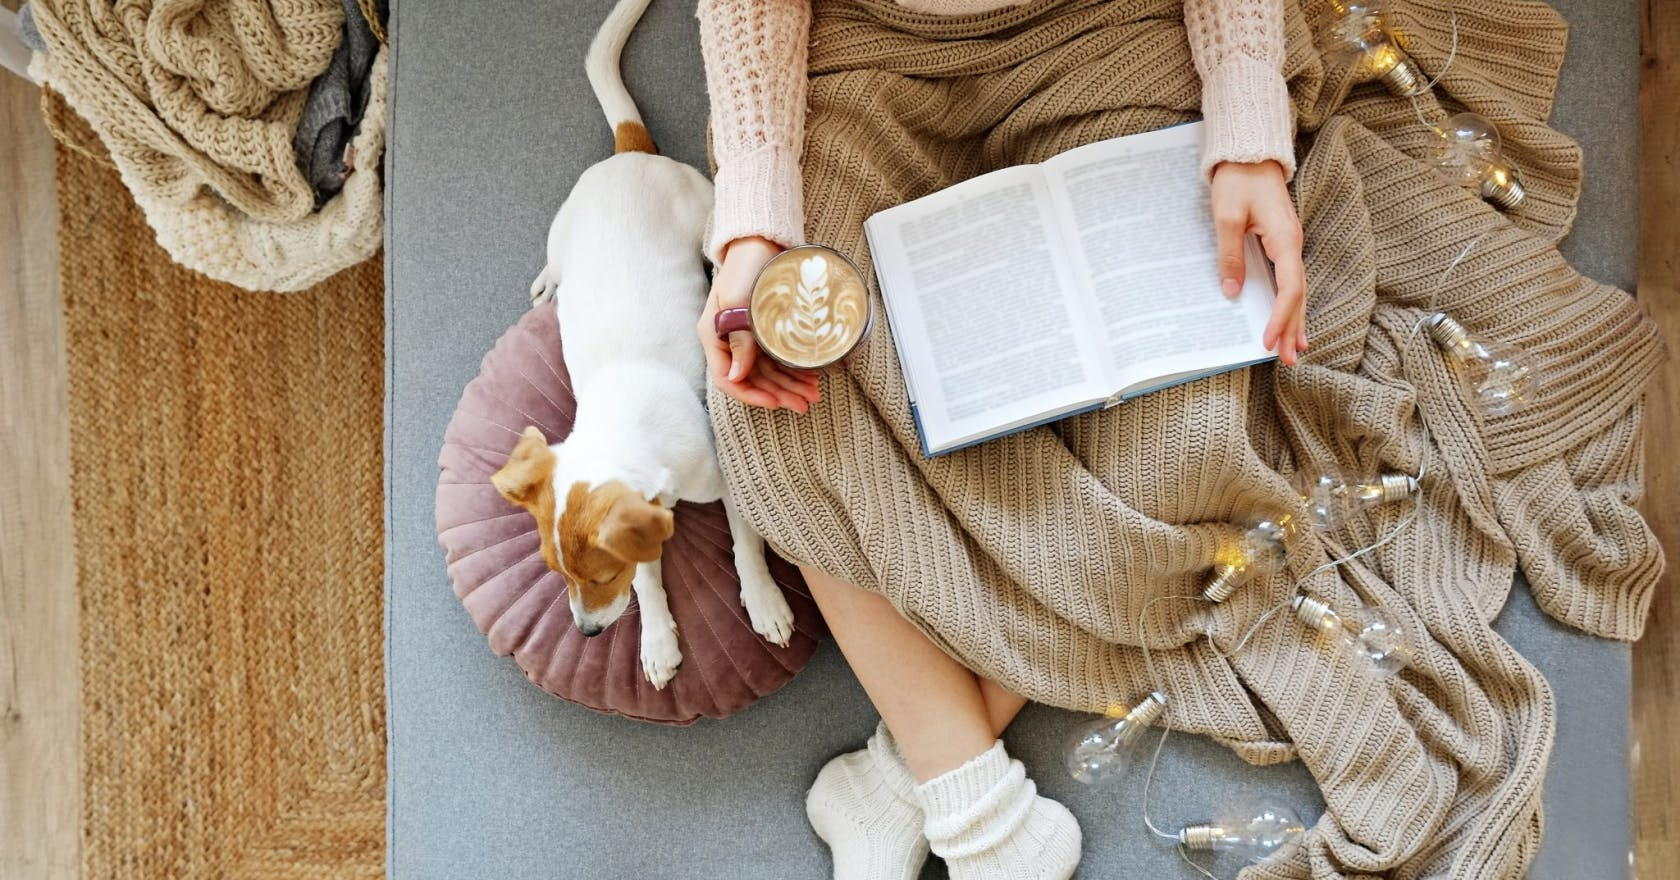 9 uplifting new books we all need in lockdown